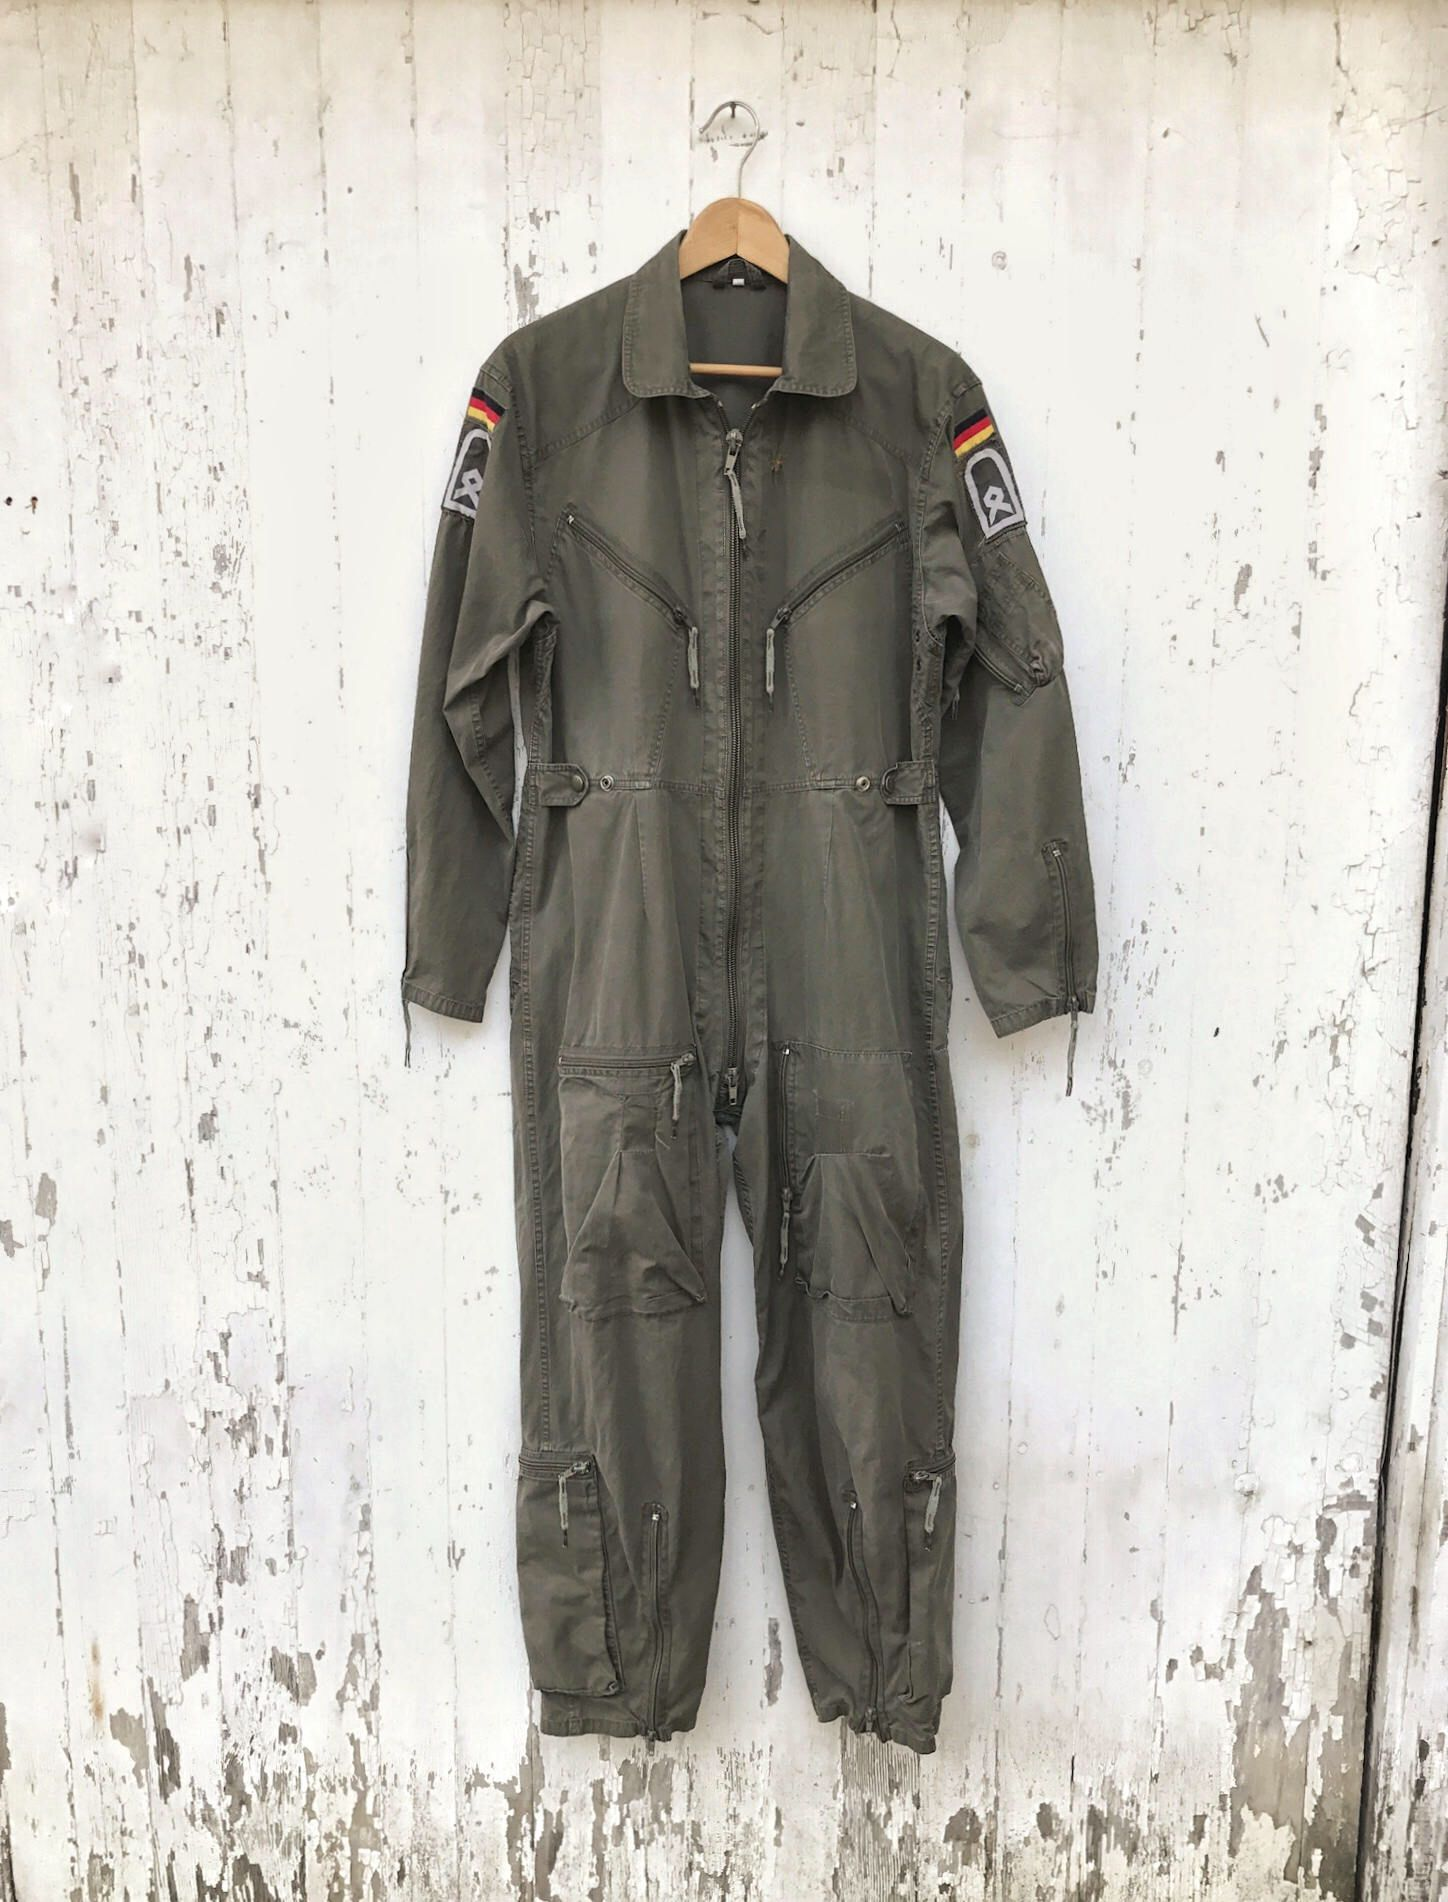 c4ac7dde6d150 Military Coveralls Jumpsuit Flight Suit Sz Small German Army Vintage by  HuntedFinds on Etsy https: